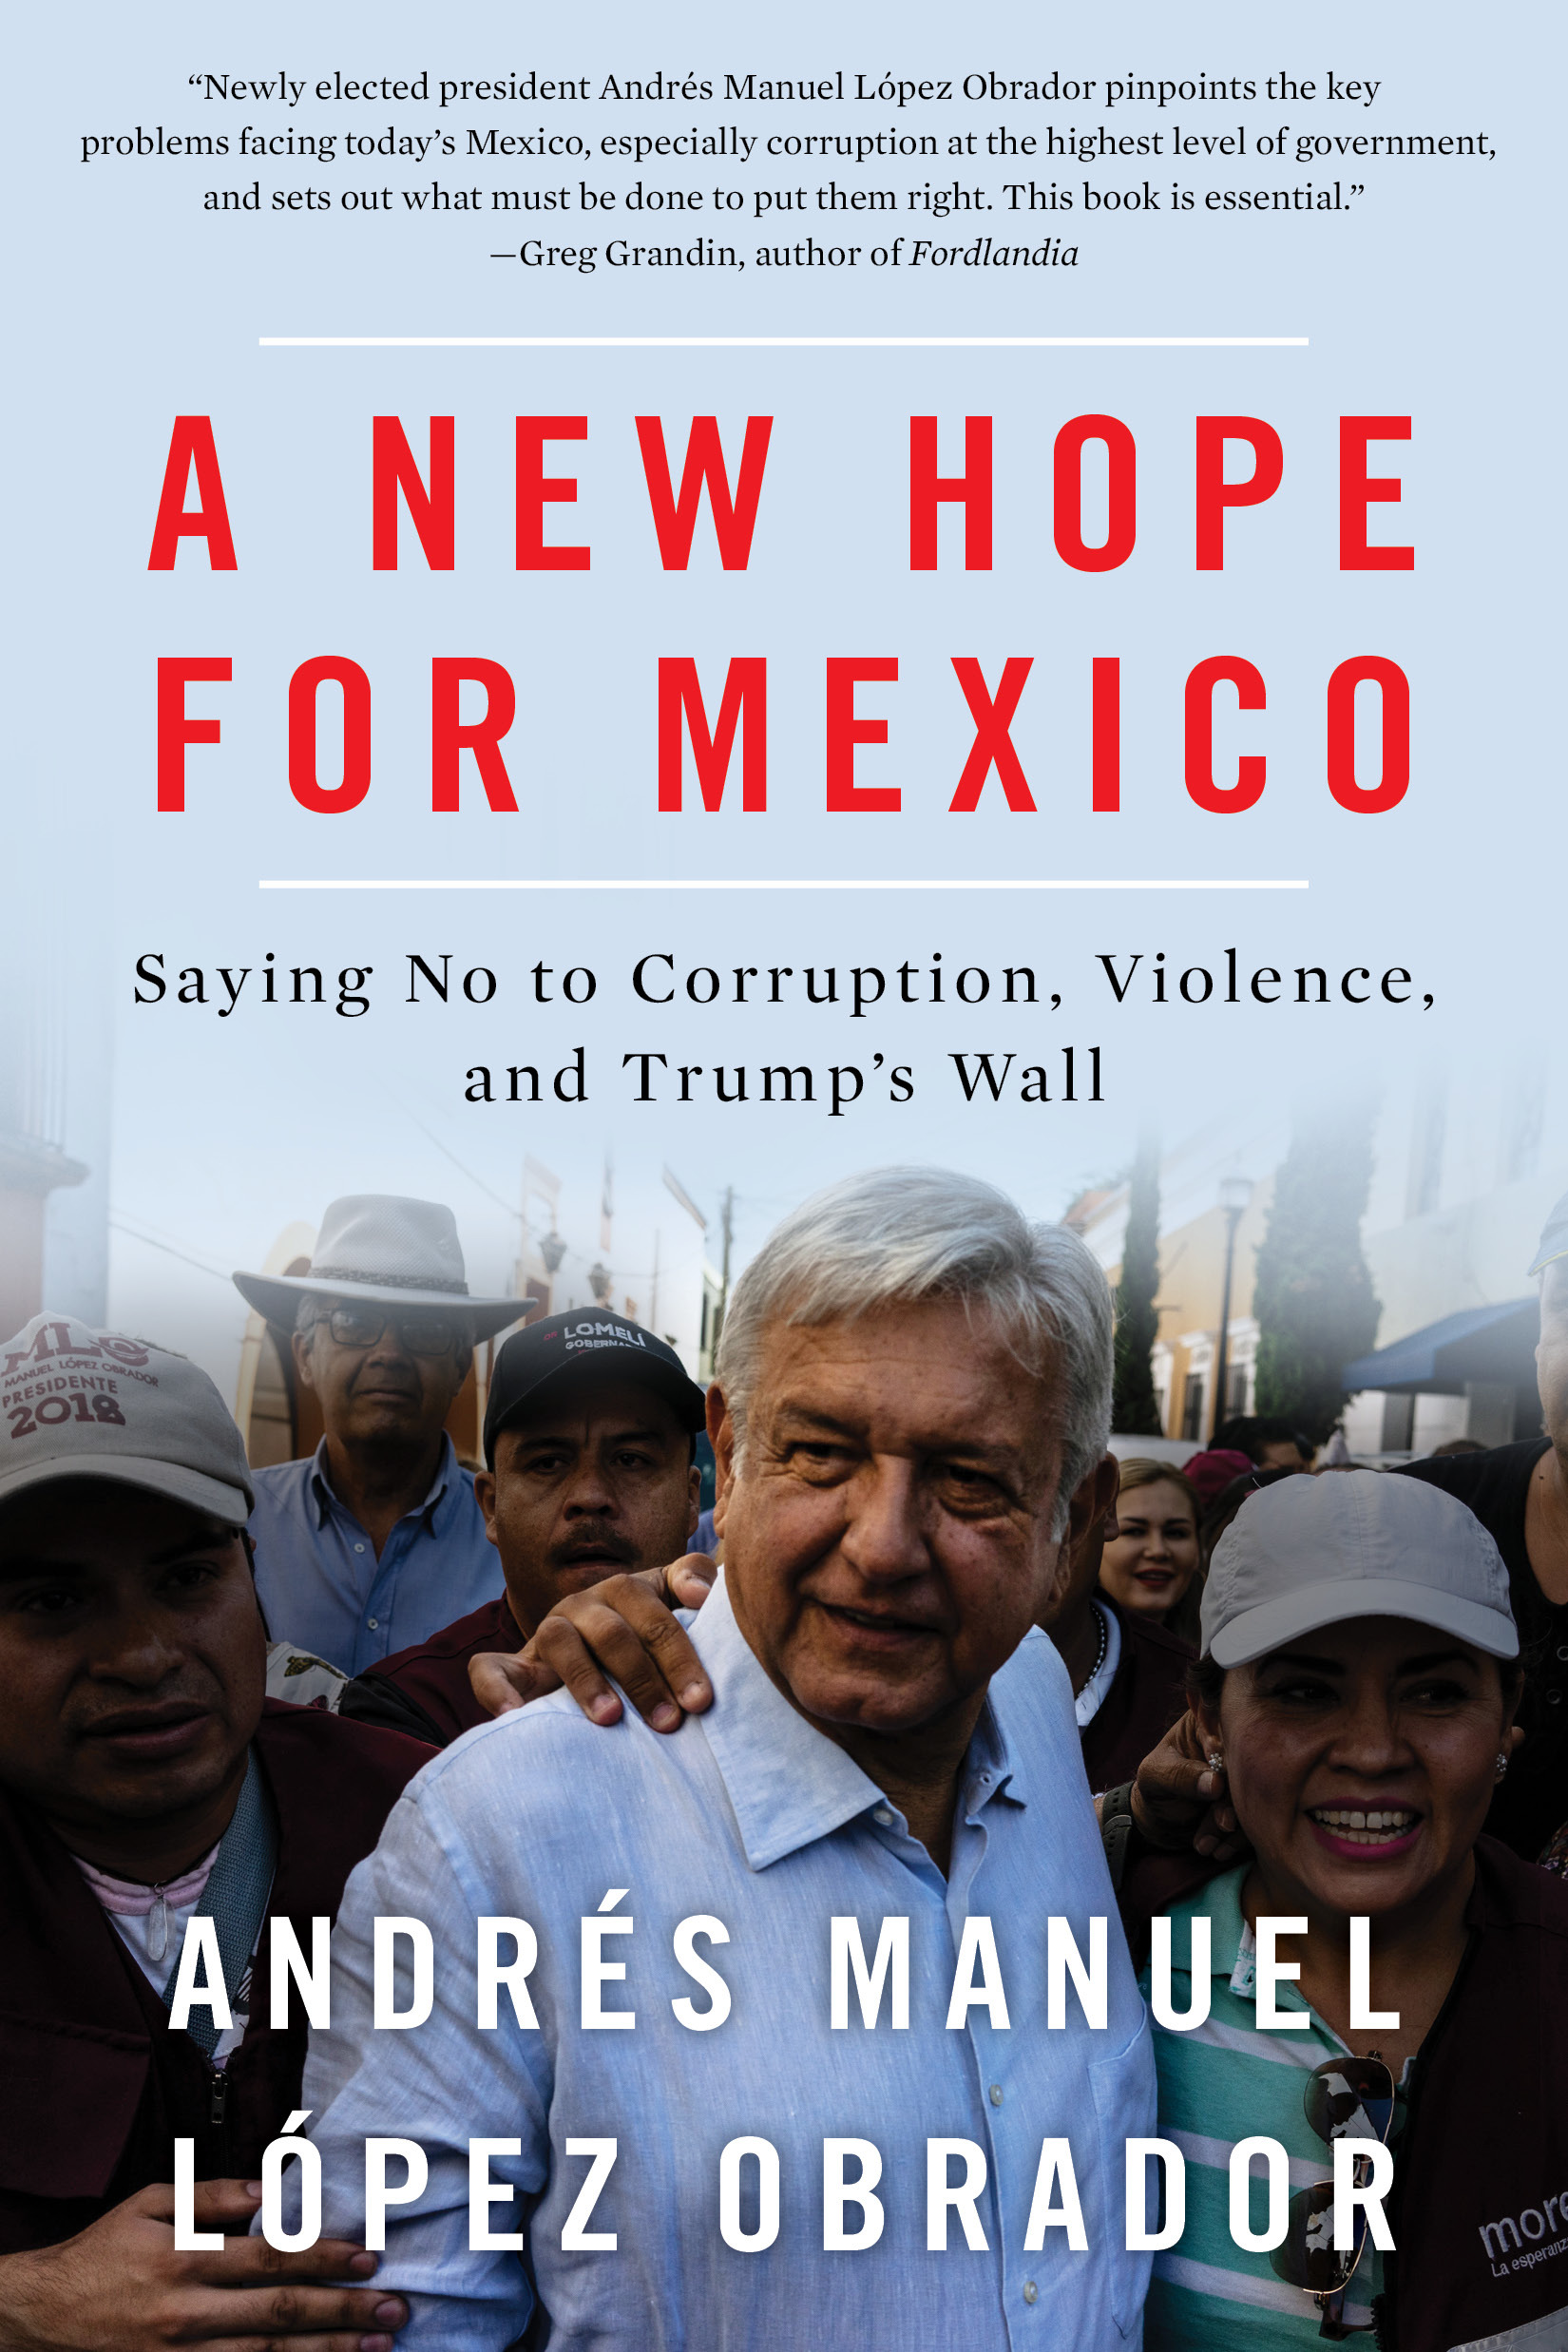 A New Hope for Mexico: Saying No to Corruption, Violence, and Trump's Wall